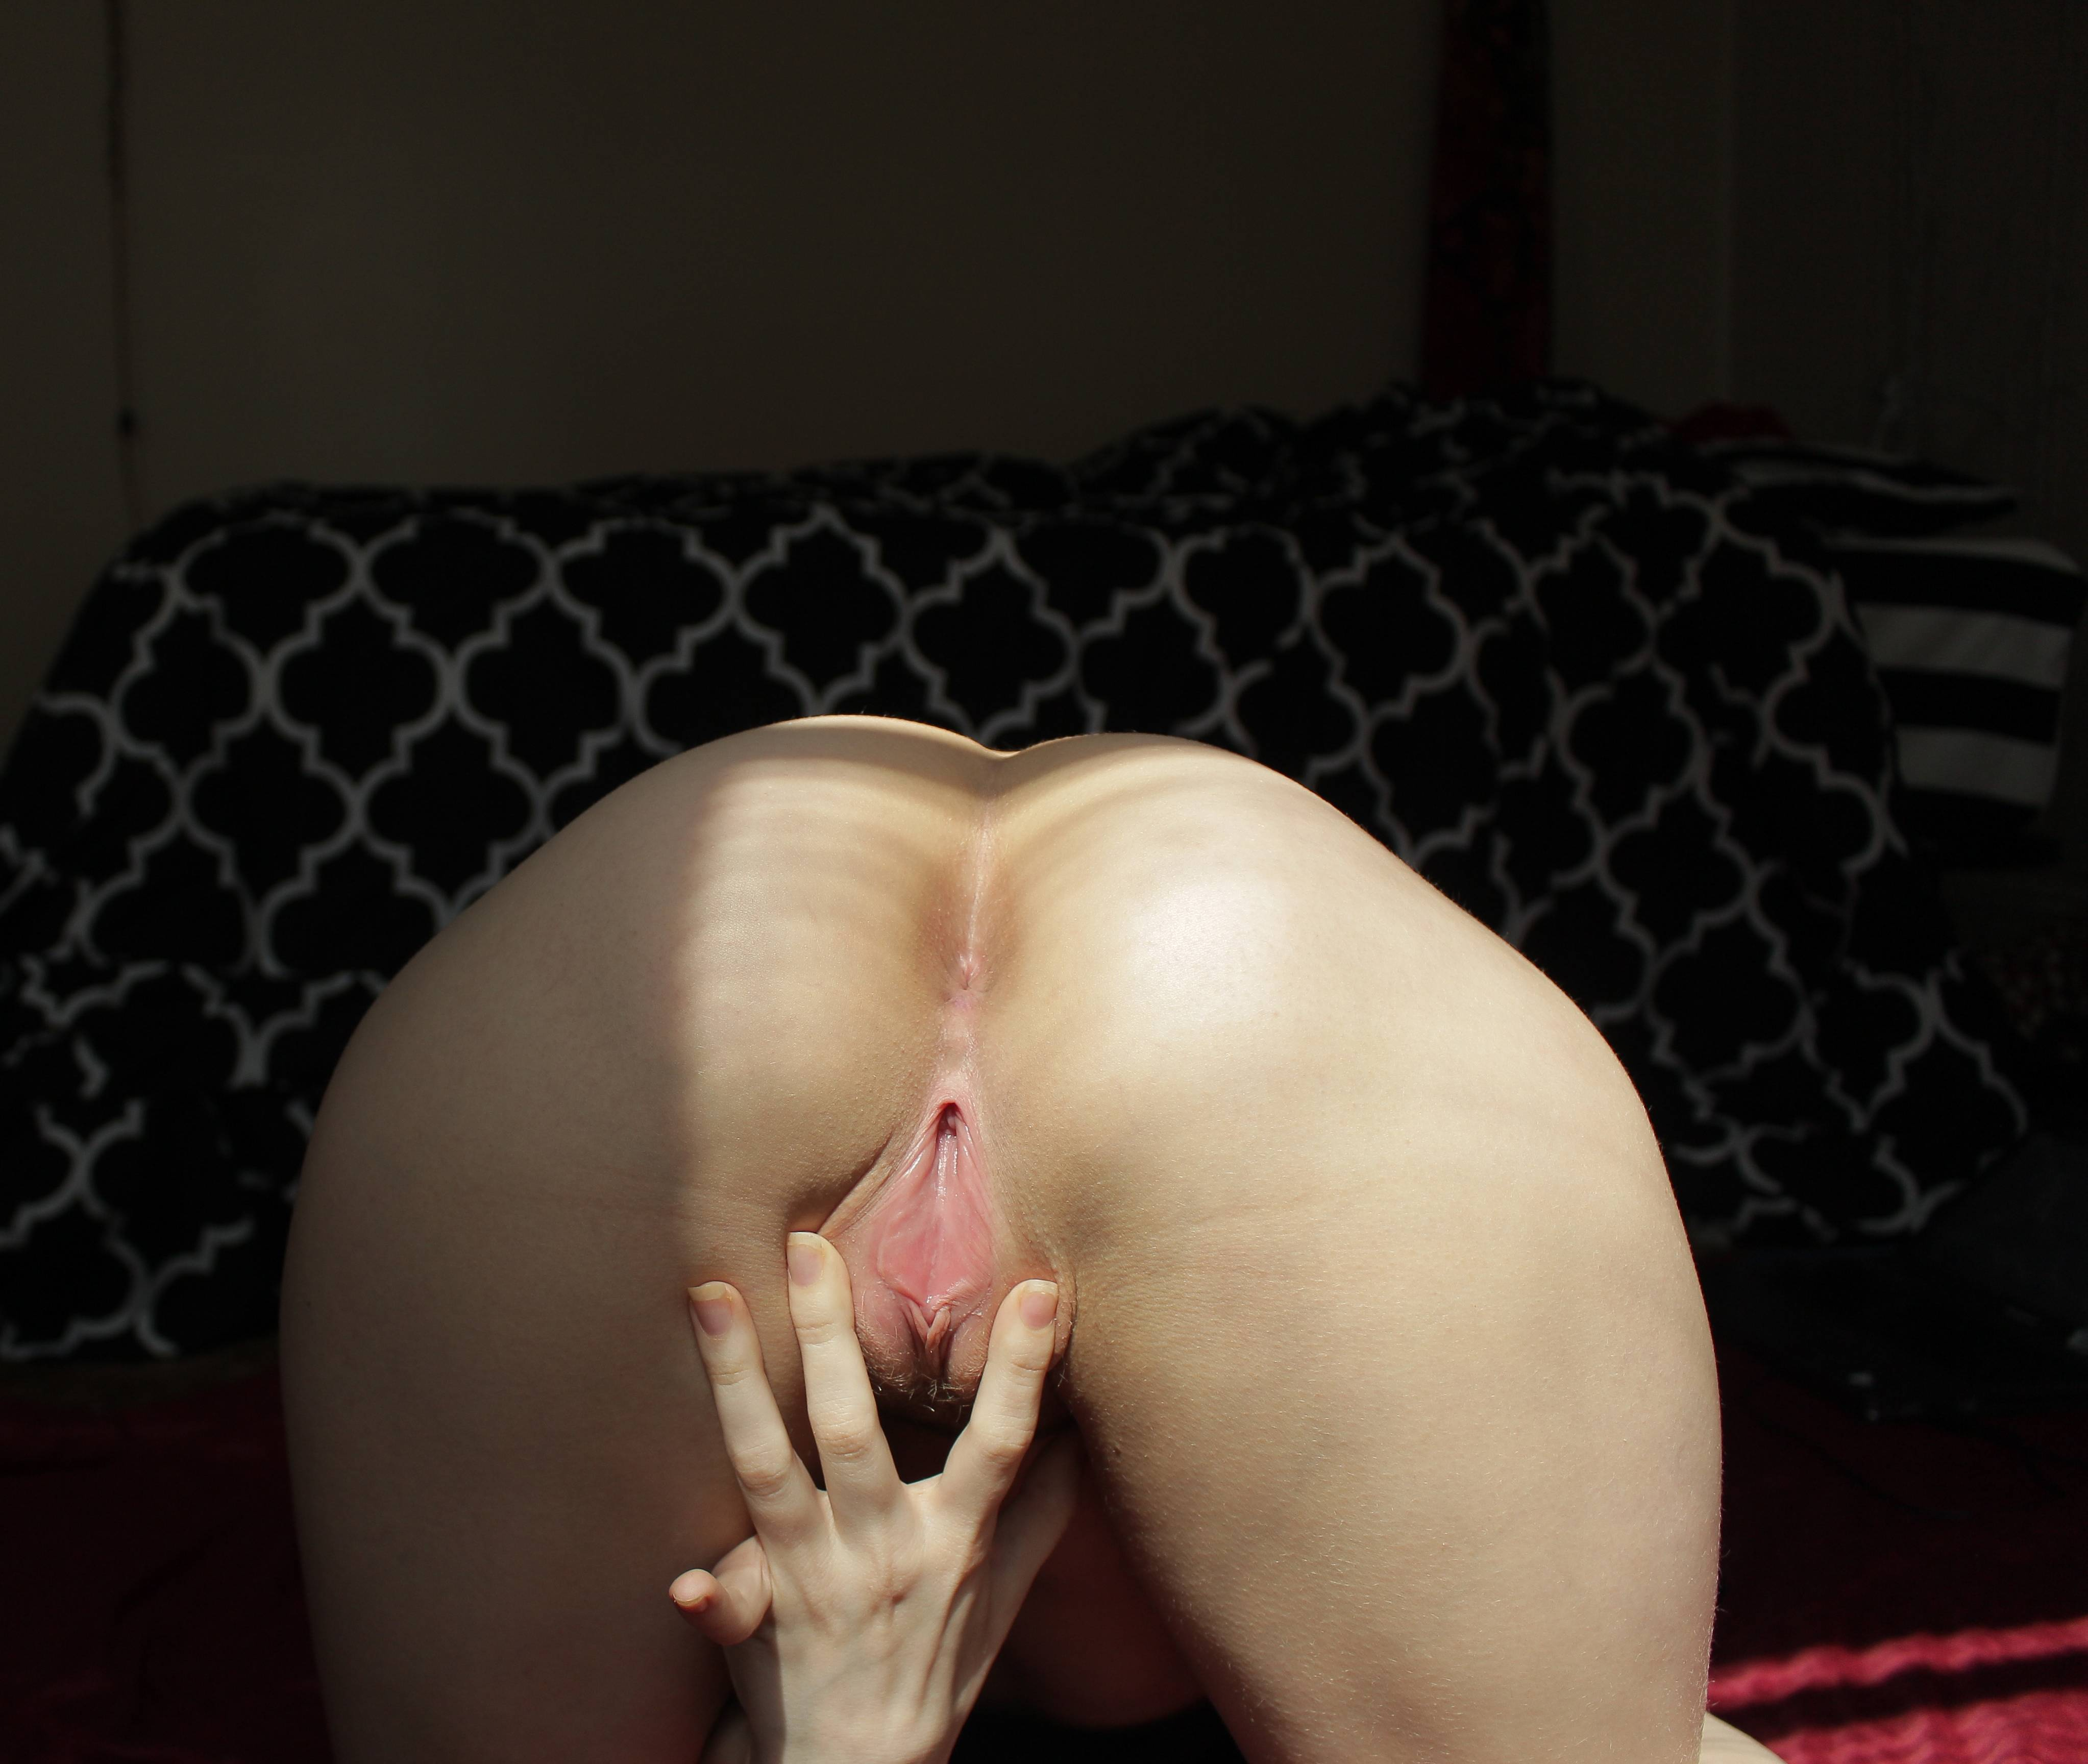 Get Milf Big Ass Bent Over Porno For Free